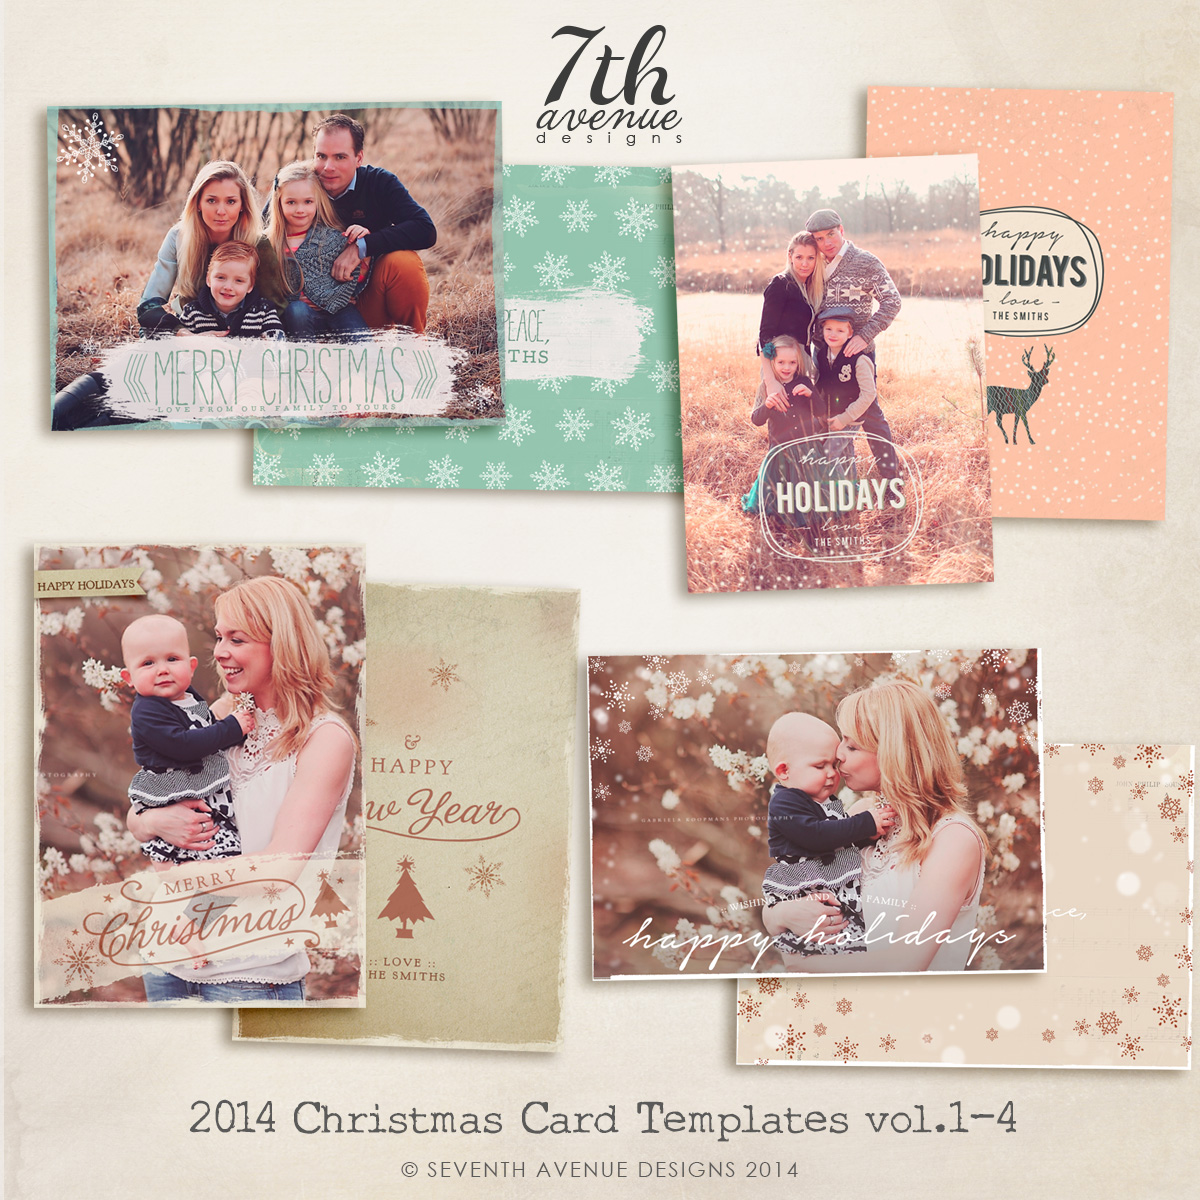 2014 Christmas Card Templates Bundle 1 -- 7x5 inch card template